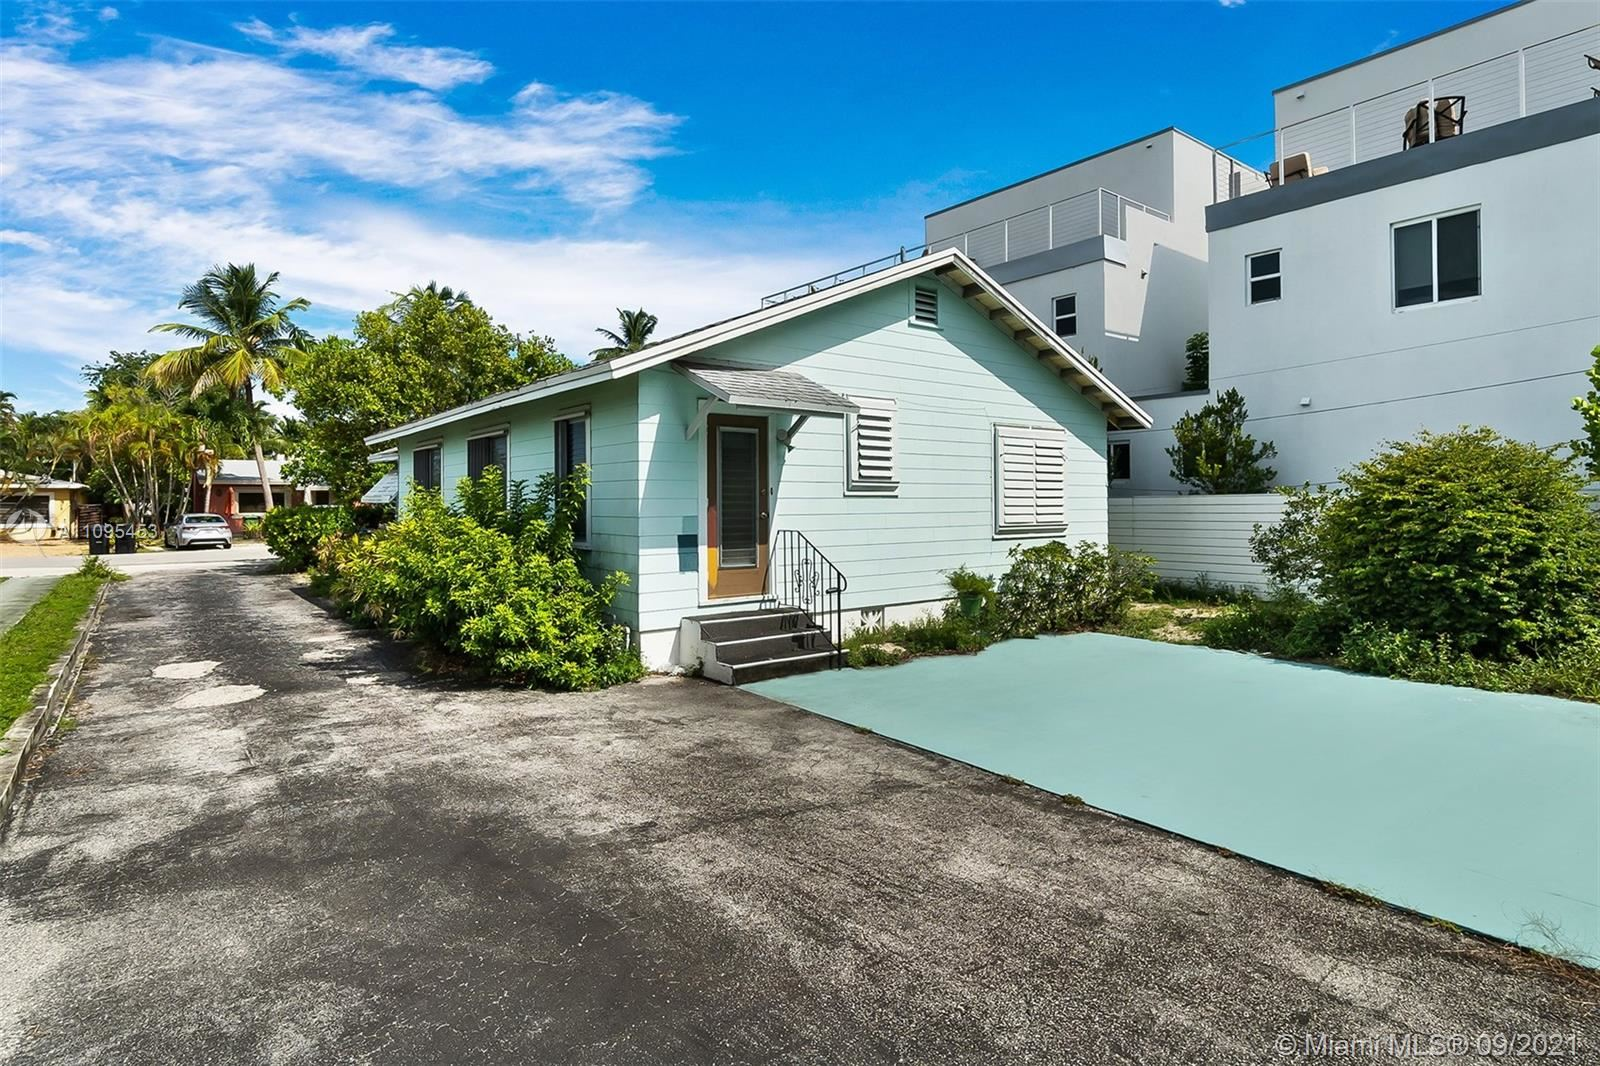 Photo of 805 NE 16th Ter, Fort Lauderdale, FL 33304 (MLS # A11095453)